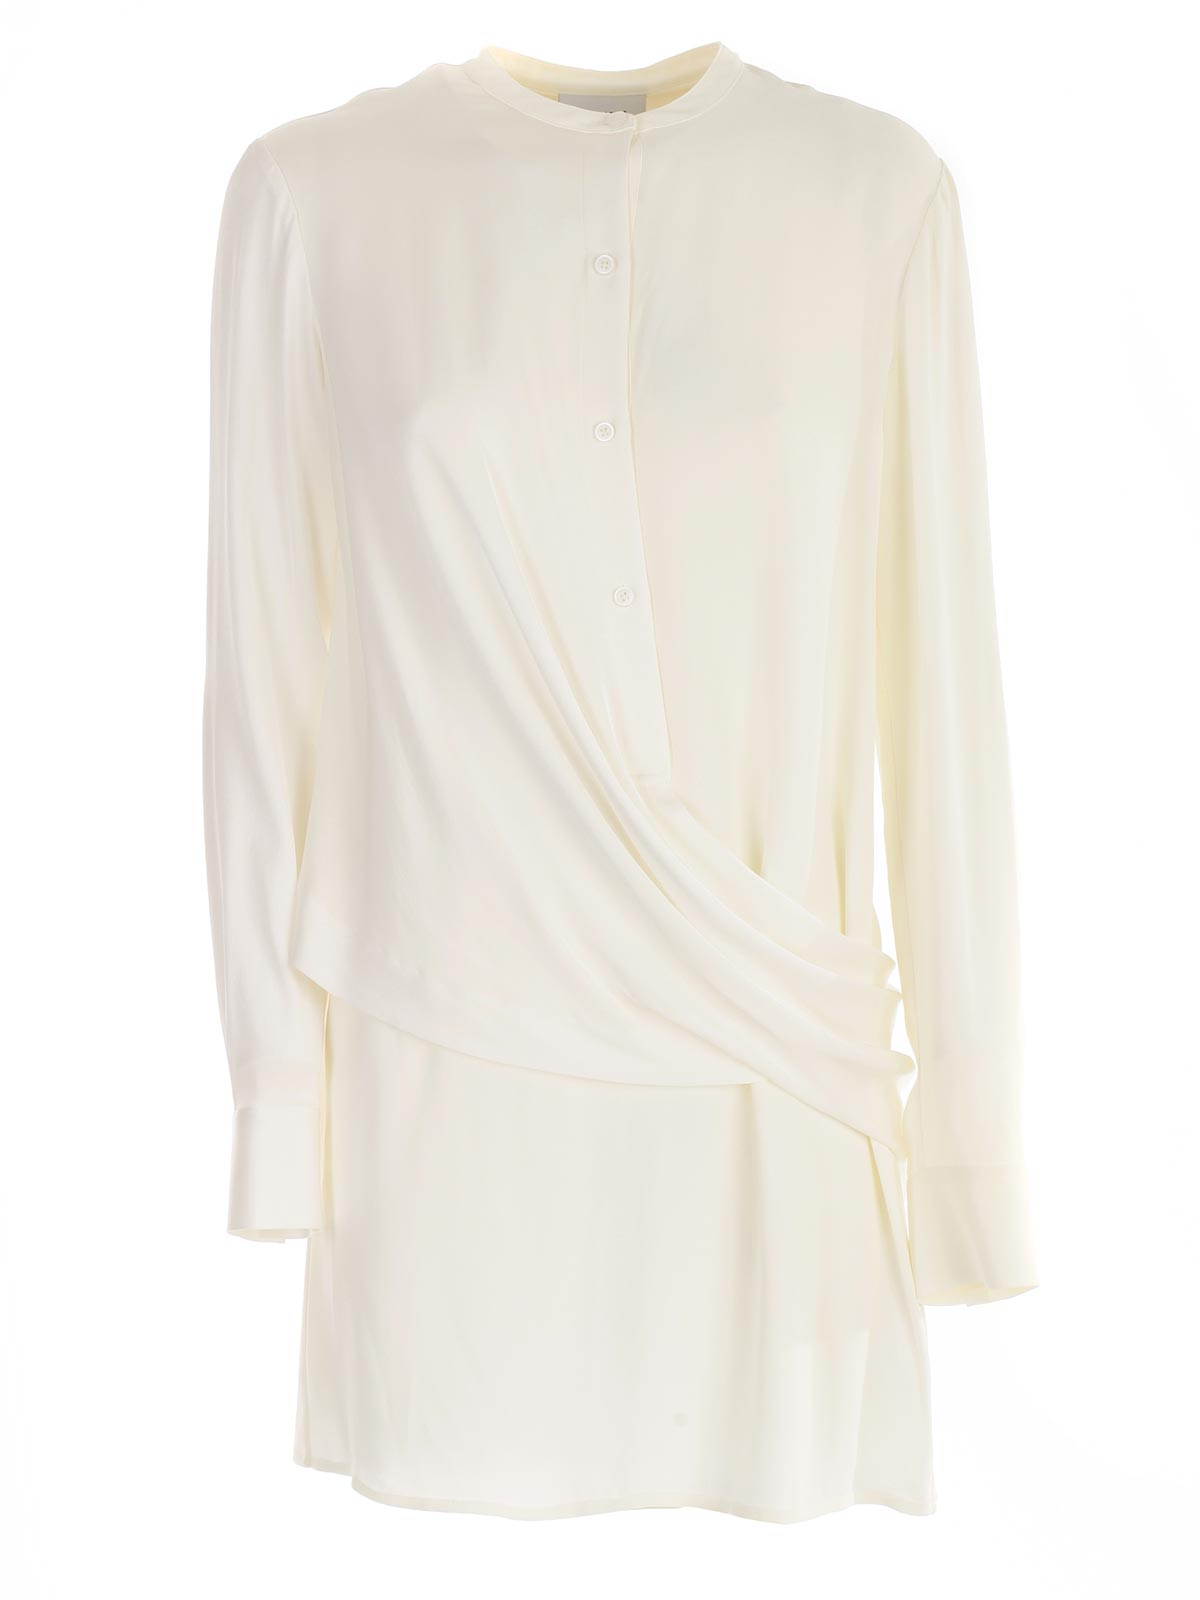 Picture of DKNY SHIRTS L/S WRAP FRNT TUNIC